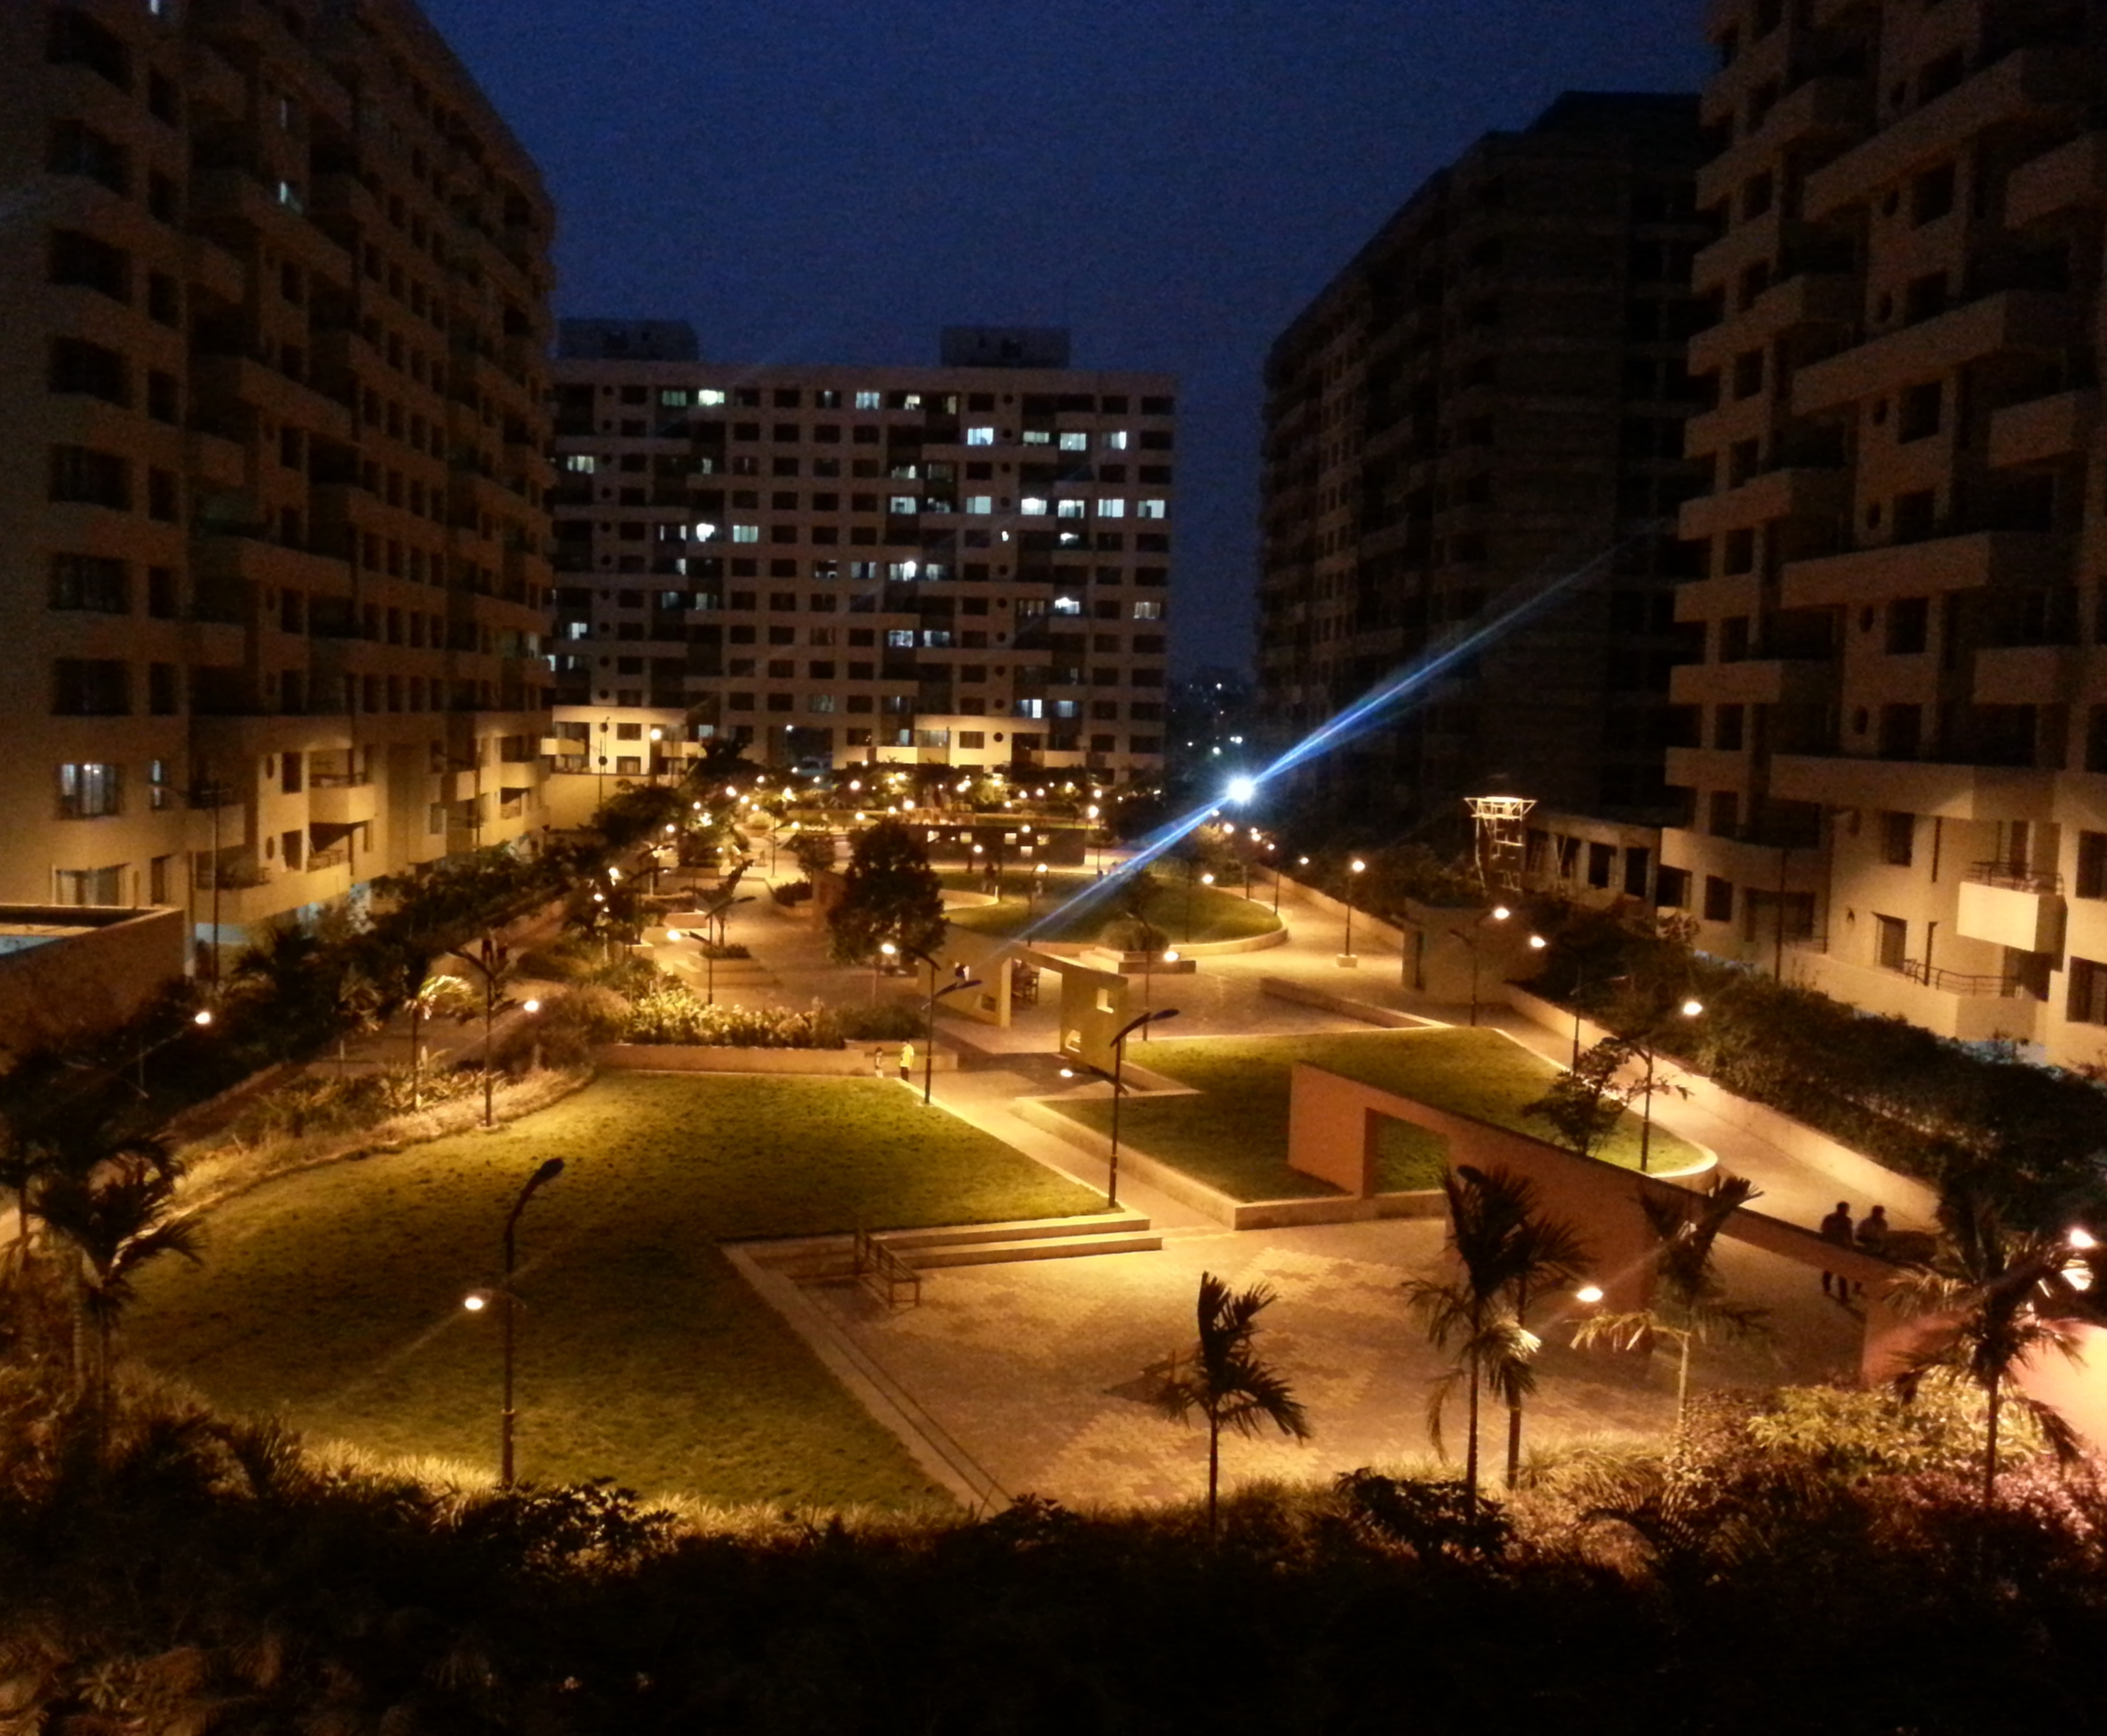 The Park - morning jogs and night walks amidst about six different flowers!